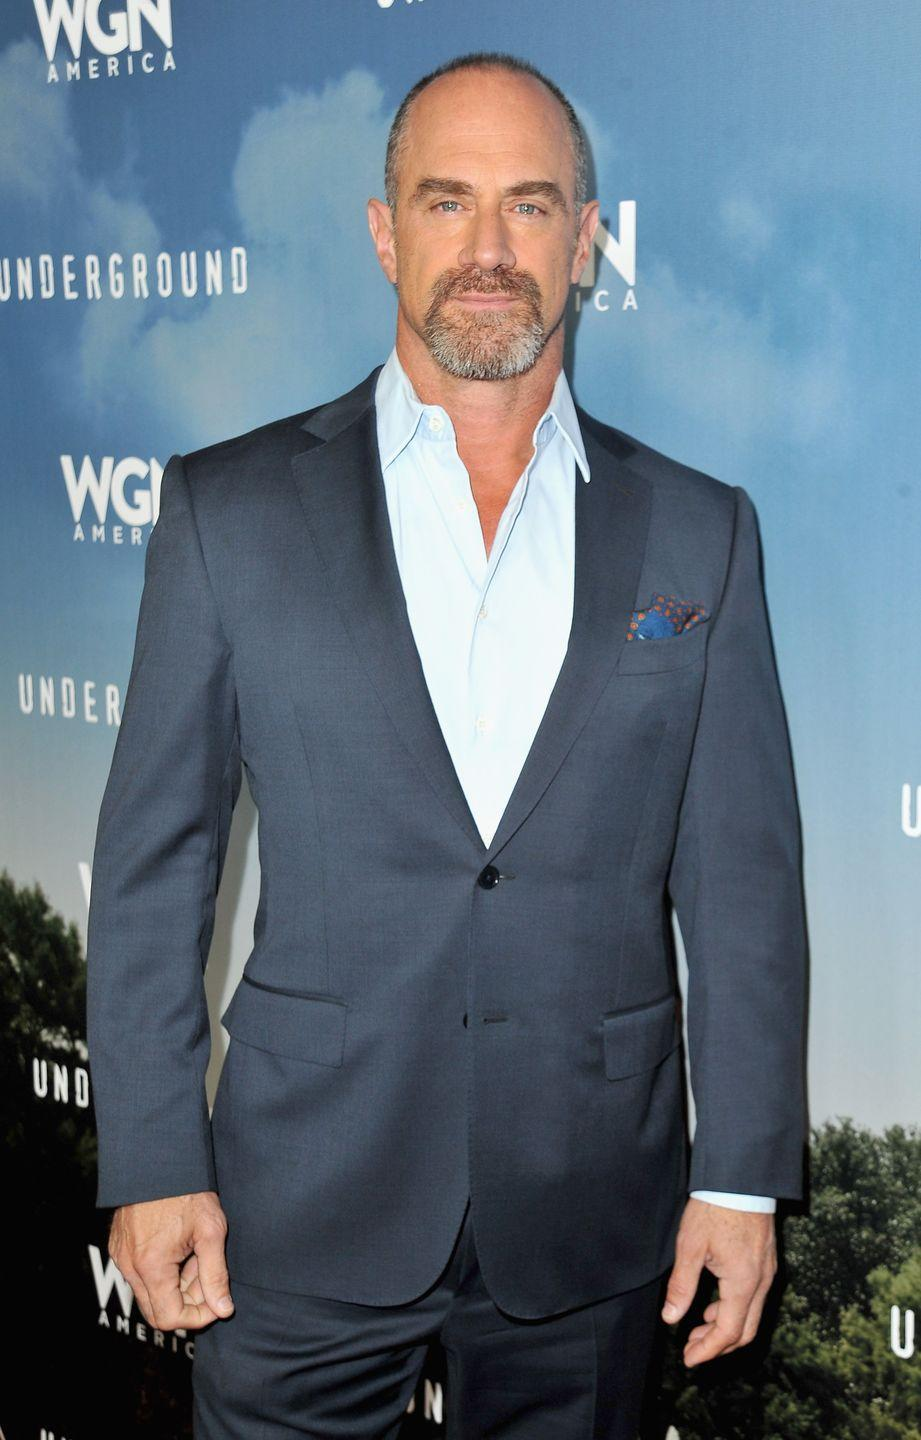 "<p>Detective Elliot Stabler made up half of the team on <em>Law and Order: SVU</em>. So, rightfully, fans were crushed when Meloni made a graceful exit before season 13 when his character retired from the police force. Meloni revealed his departure from NBC was purely due to contract negotiations. ""I left with zero animosity, but I did leave clearly and open-eyed in going forward and finding new adventures,"" Meloni told <a href=""https://nypost.com/2020/07/06/christopher-meloni-on-returning-to-the-law-order-universe/"" rel=""nofollow noopener"" target=""_blank"" data-ylk=""slk:The New York Post"" class=""link rapid-noclick-resp"">The New York Post</a>.</p>"